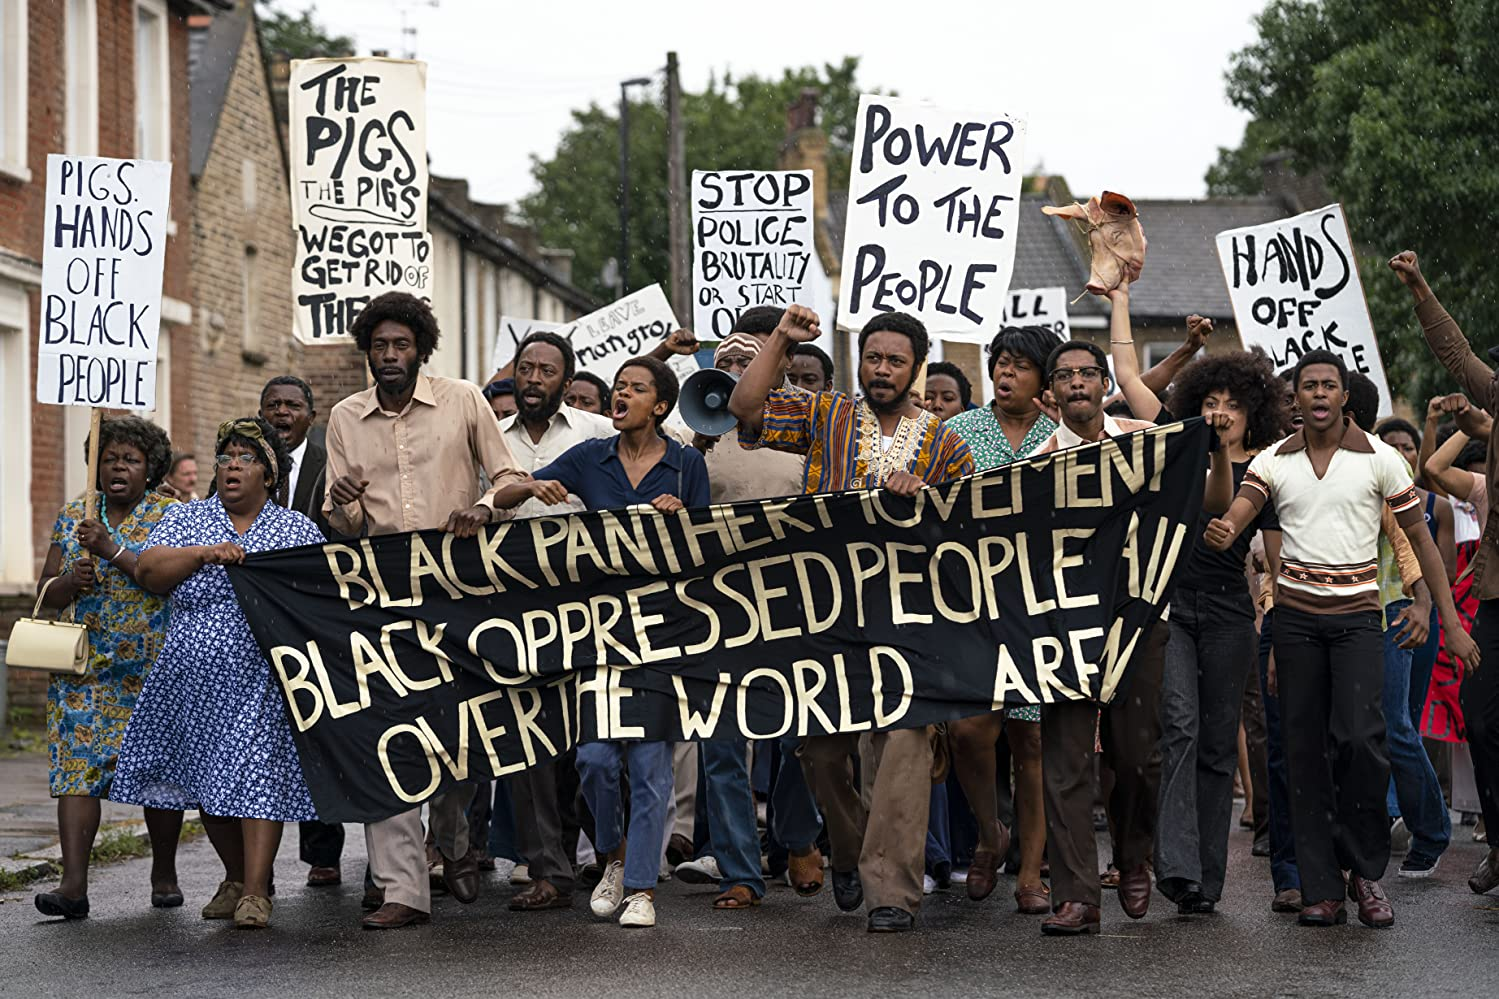 The cast of Steve McQueen's Mangrove (part of the Small Axe film anthology) protesting racism and police brutality